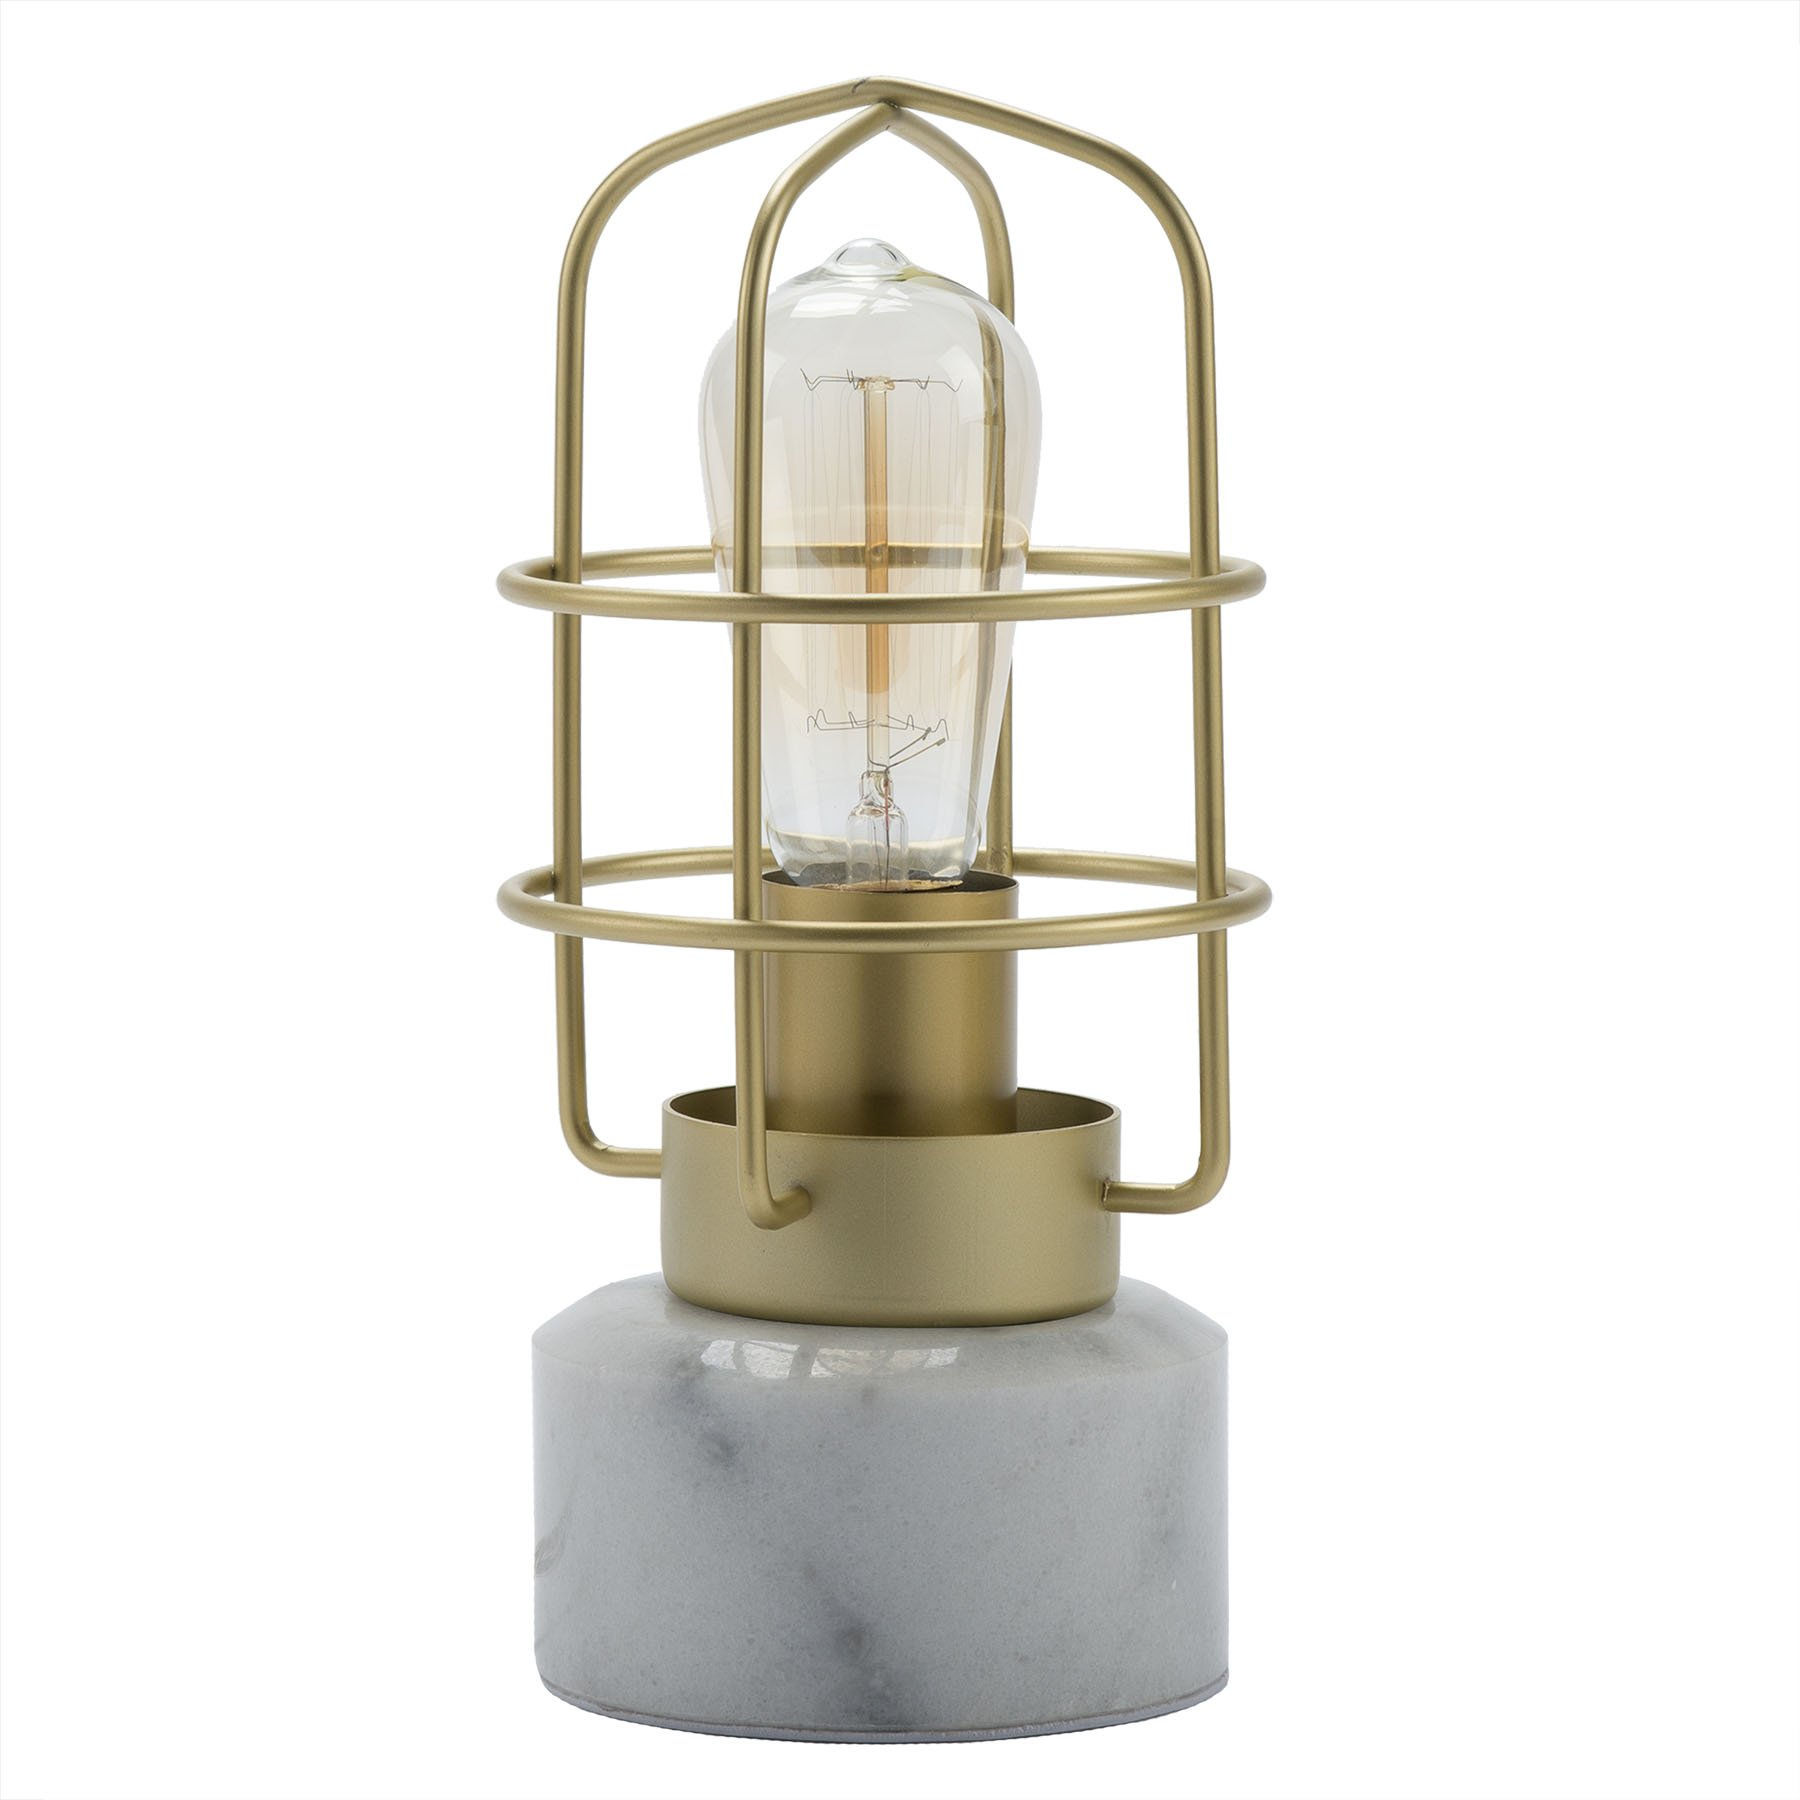 CO-Z Industrial Table Lamp with Marble Base, Vintage Loft Style Desk Lamp 10 inches in Height, Edison Bulb Not Included for Living Room Bedroom Dining Room, UL Certificate